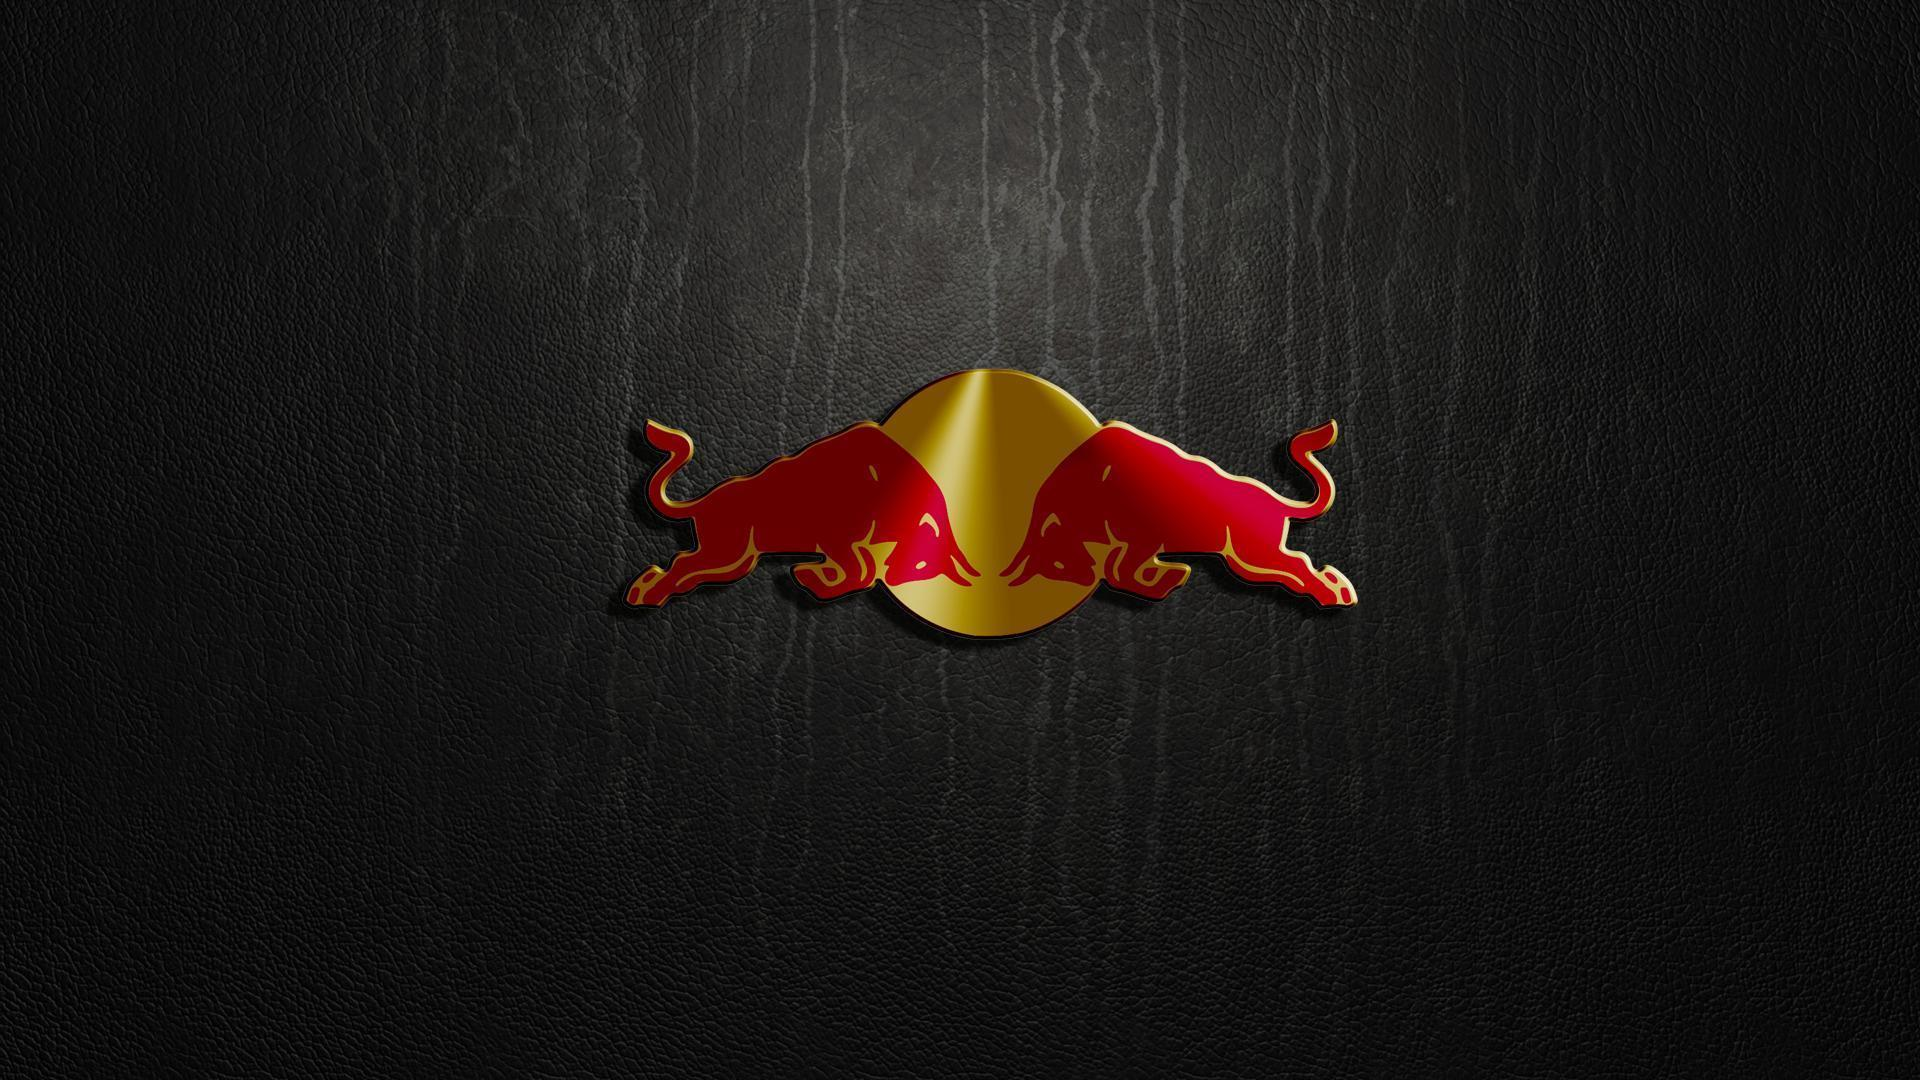 Red bull f1 wallpaper hd iphone